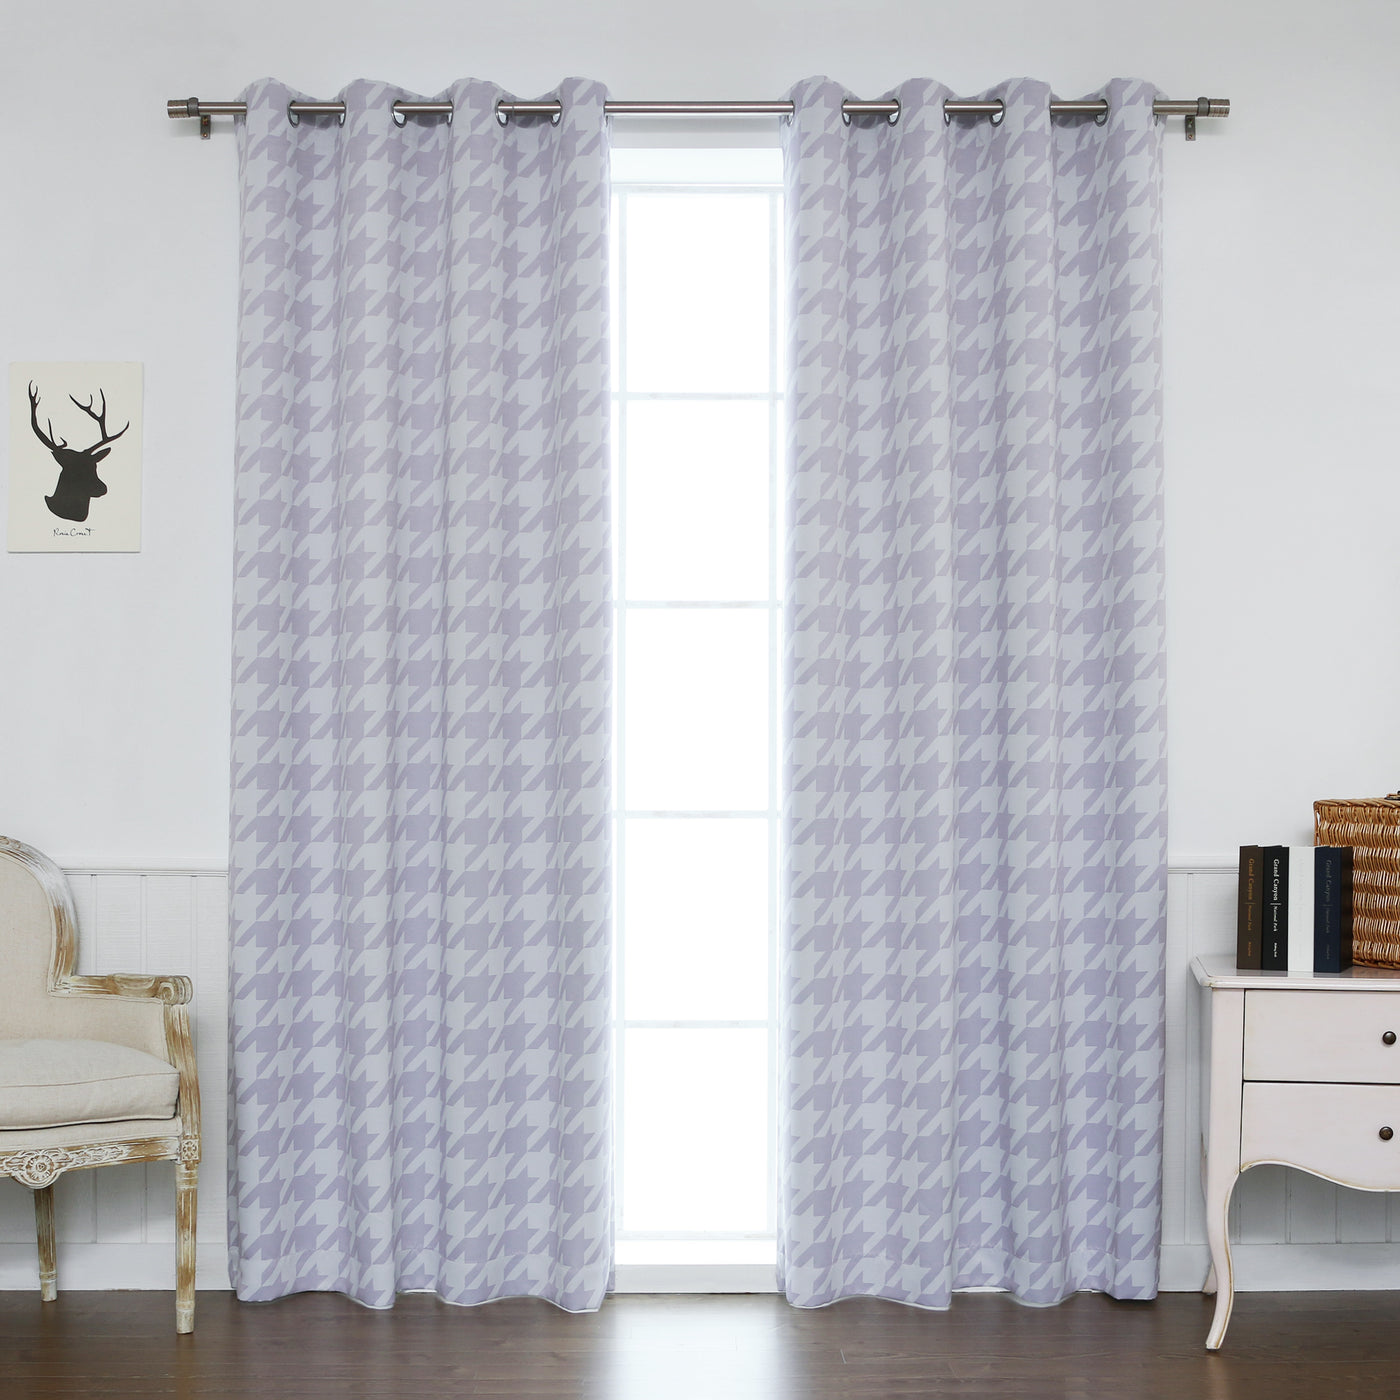 Large Houndstooth Room Darkening Curtains